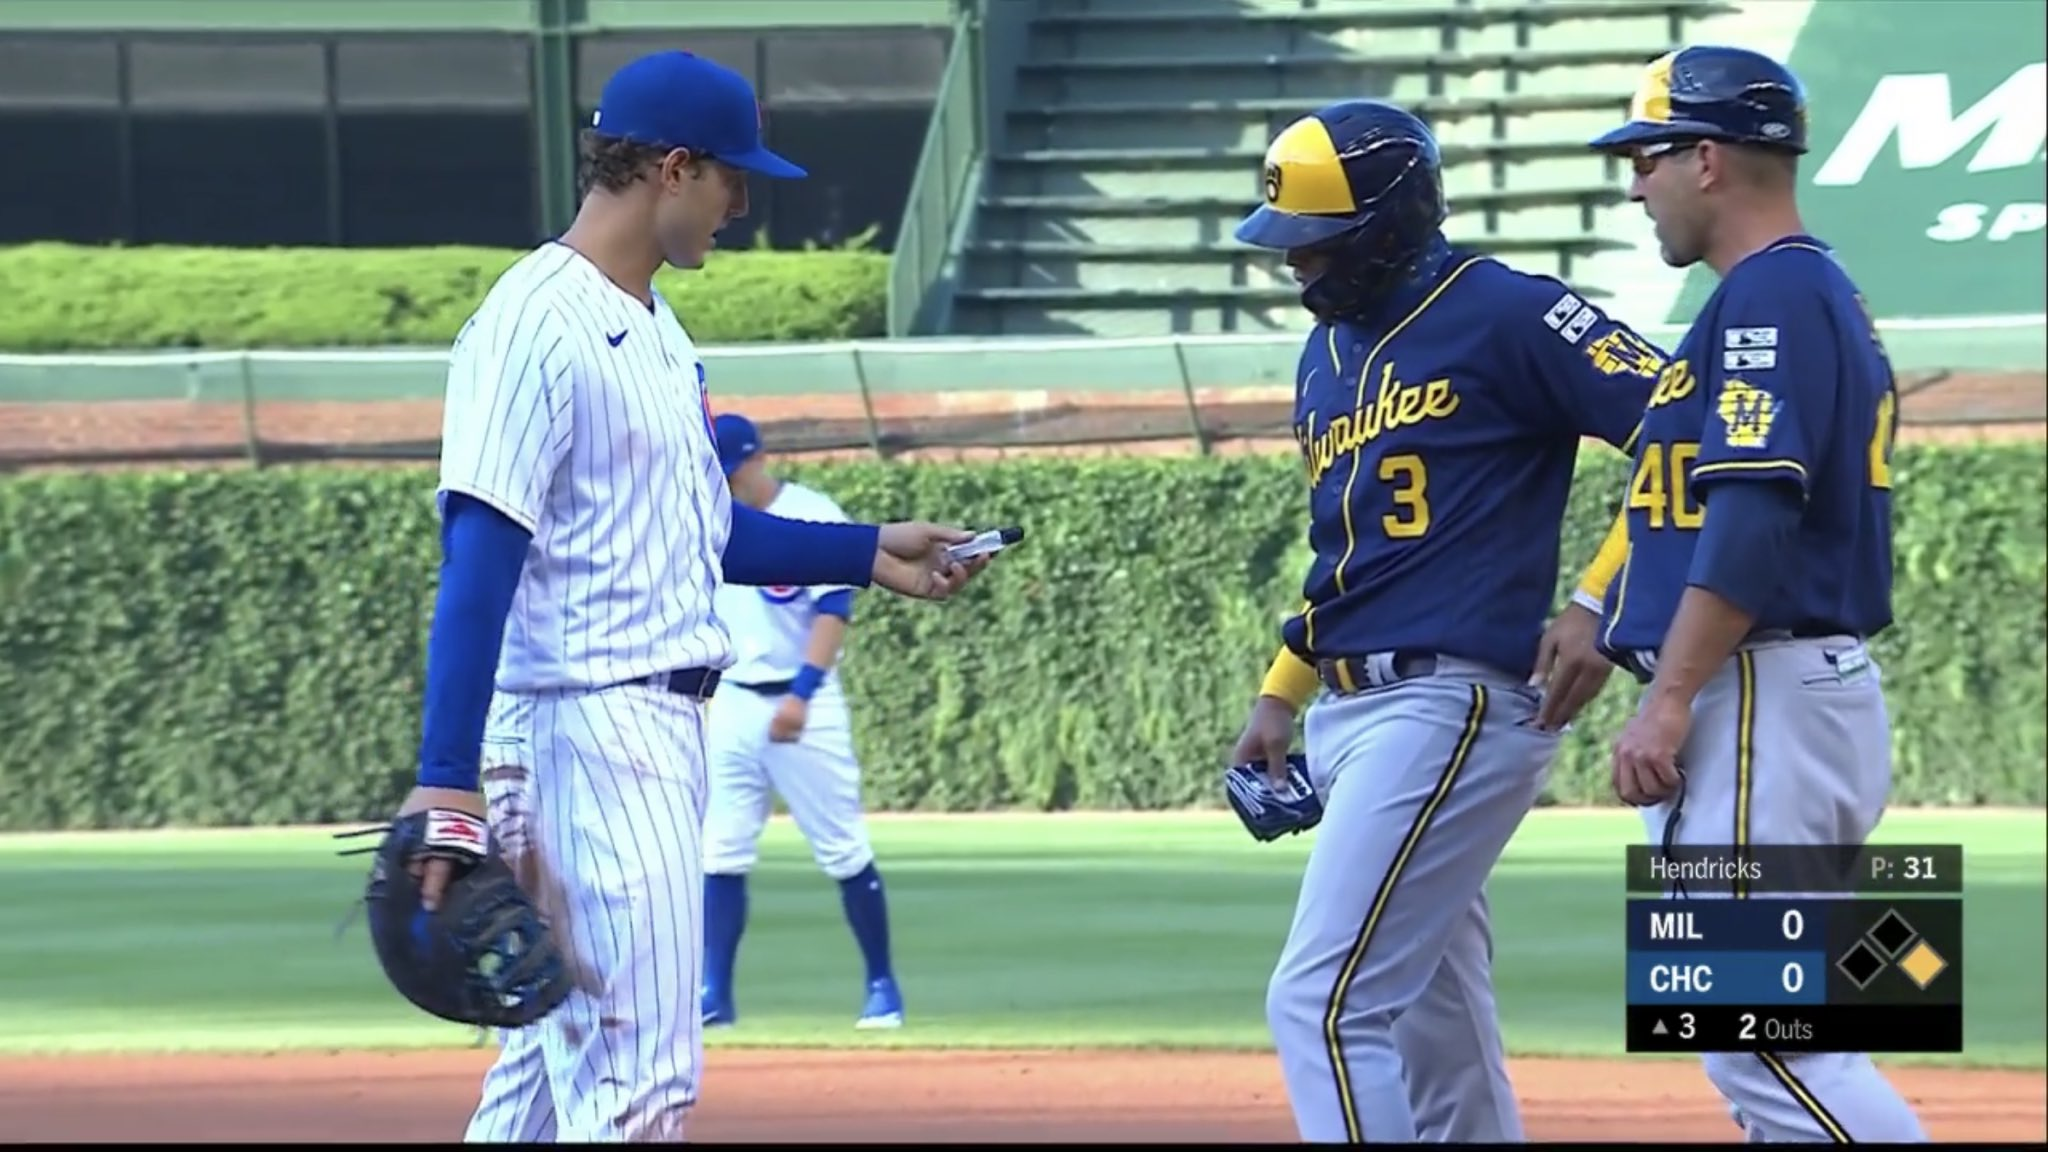 Video: Cubs 1B Anthony Rizzo gives Orlando Arcia hand sanitizer